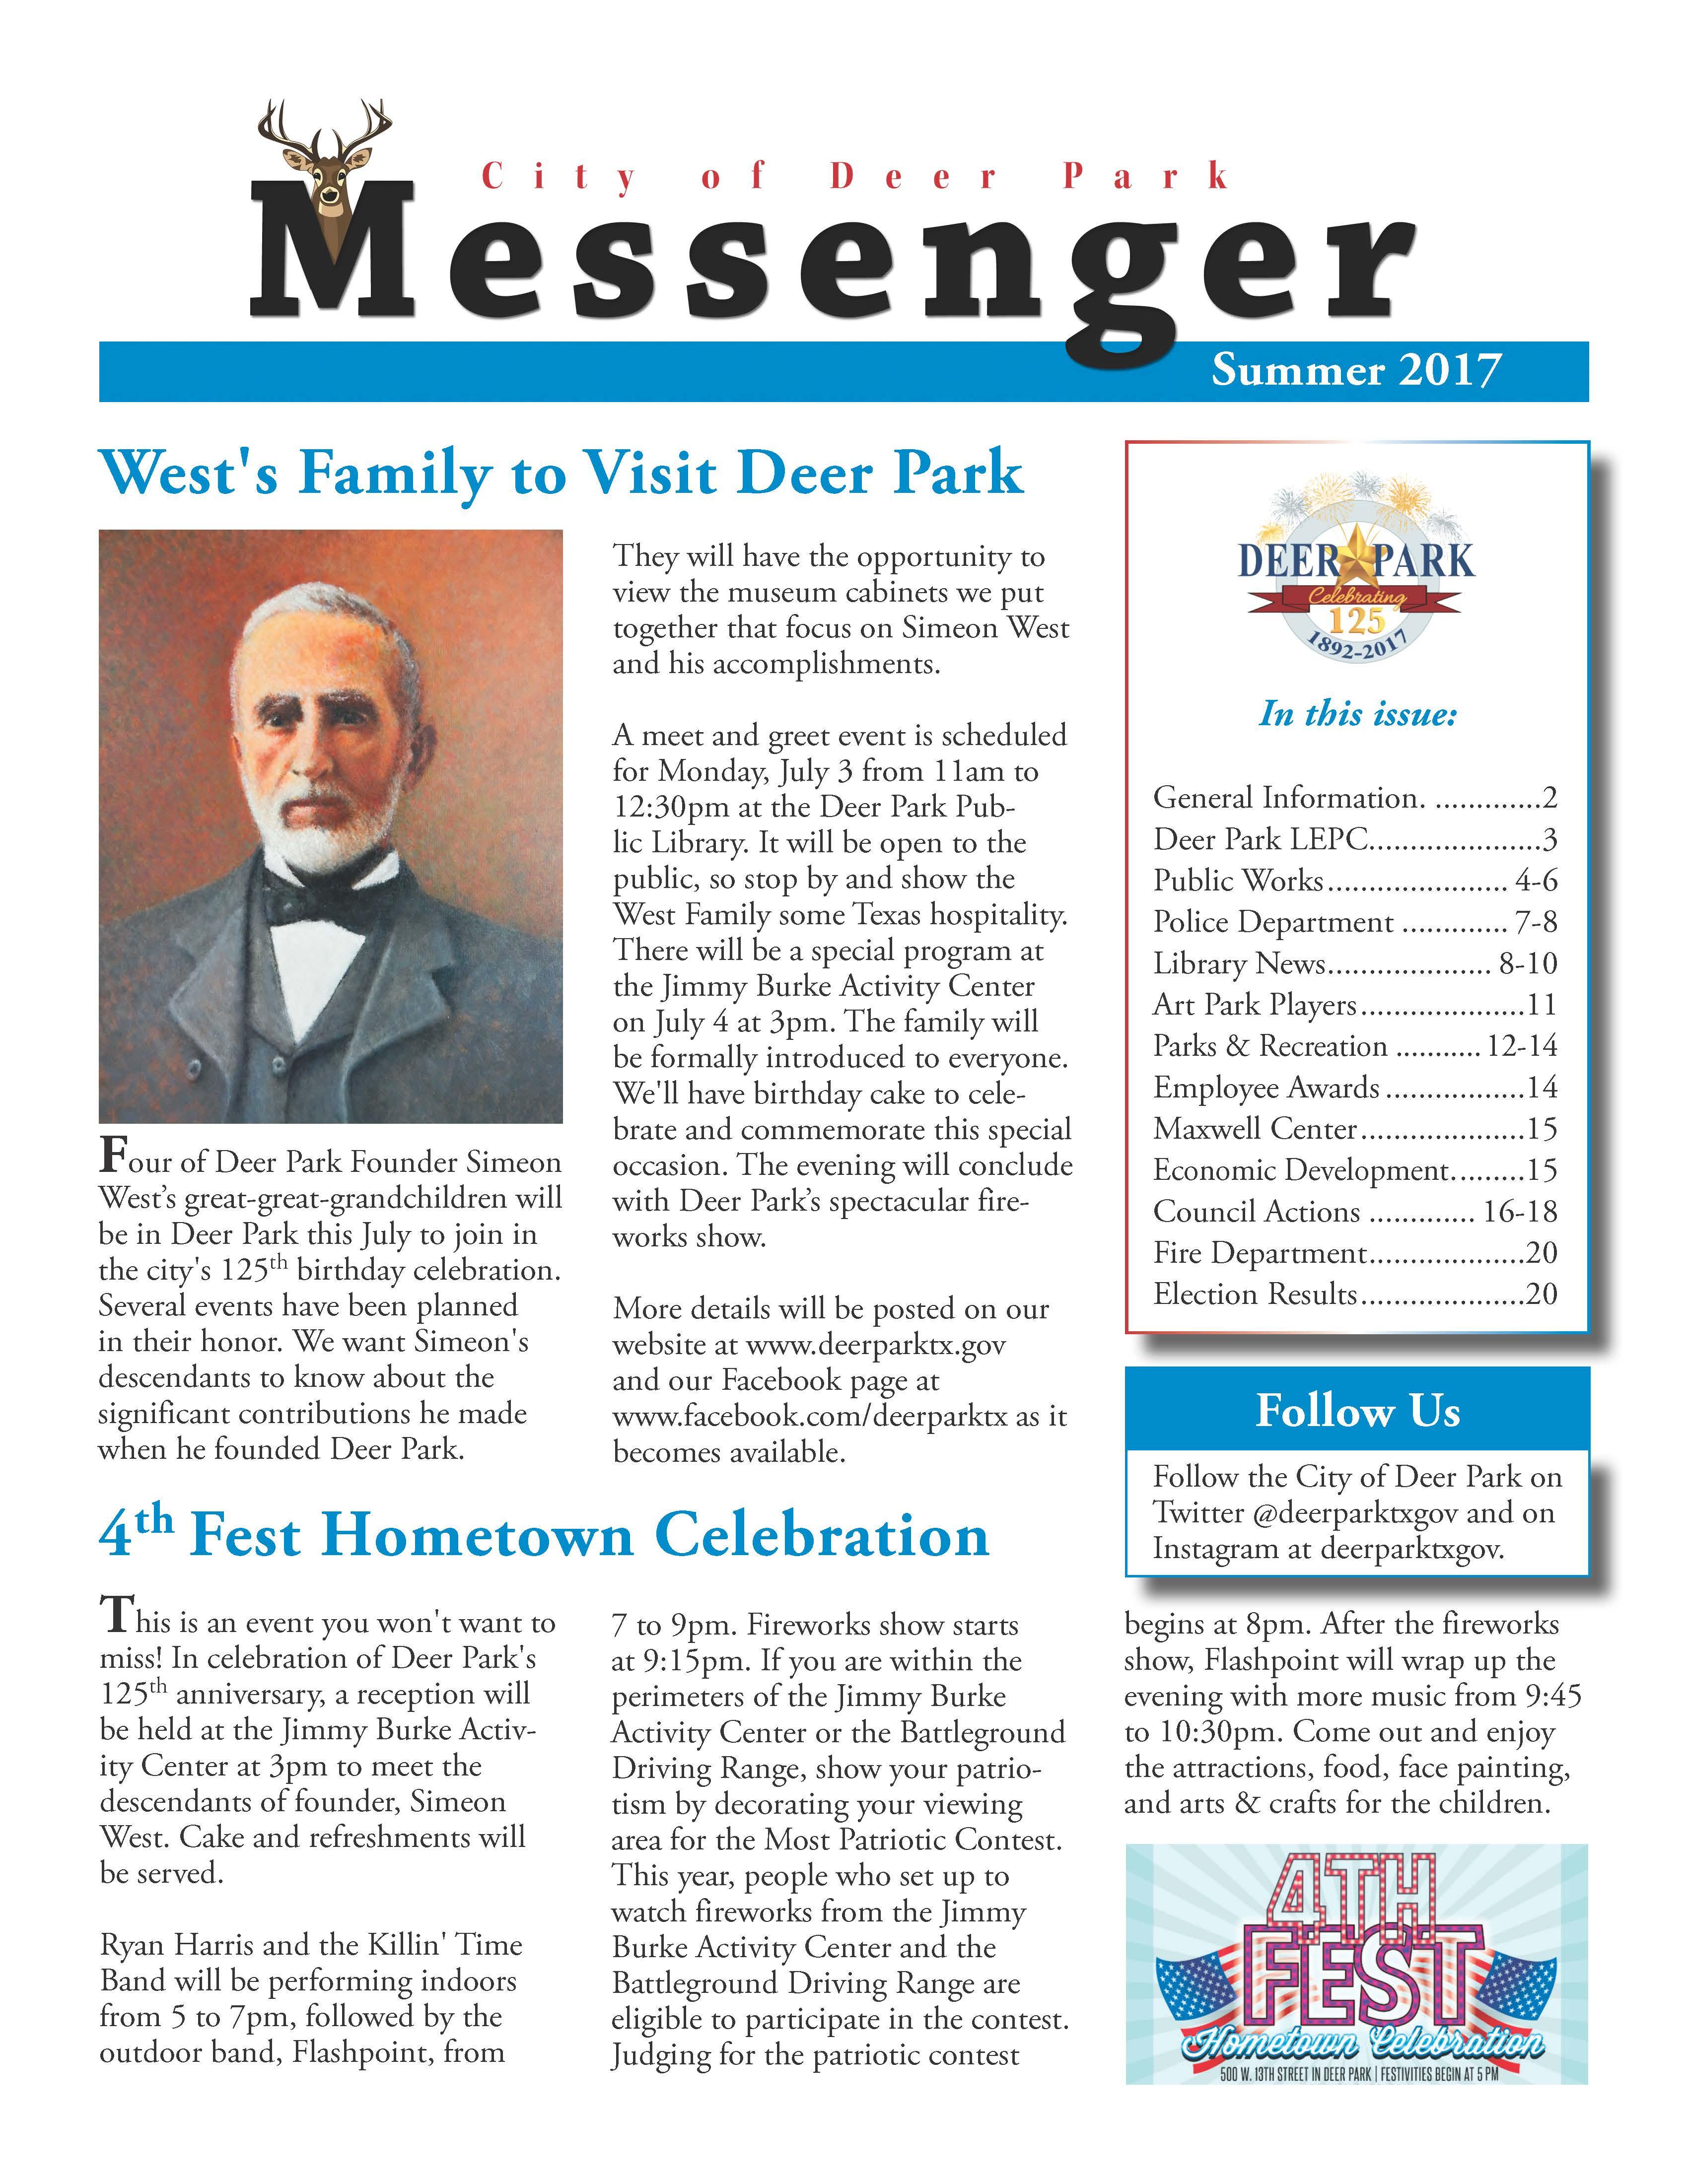 Summer 2017 Messenger_final front cover.jpg